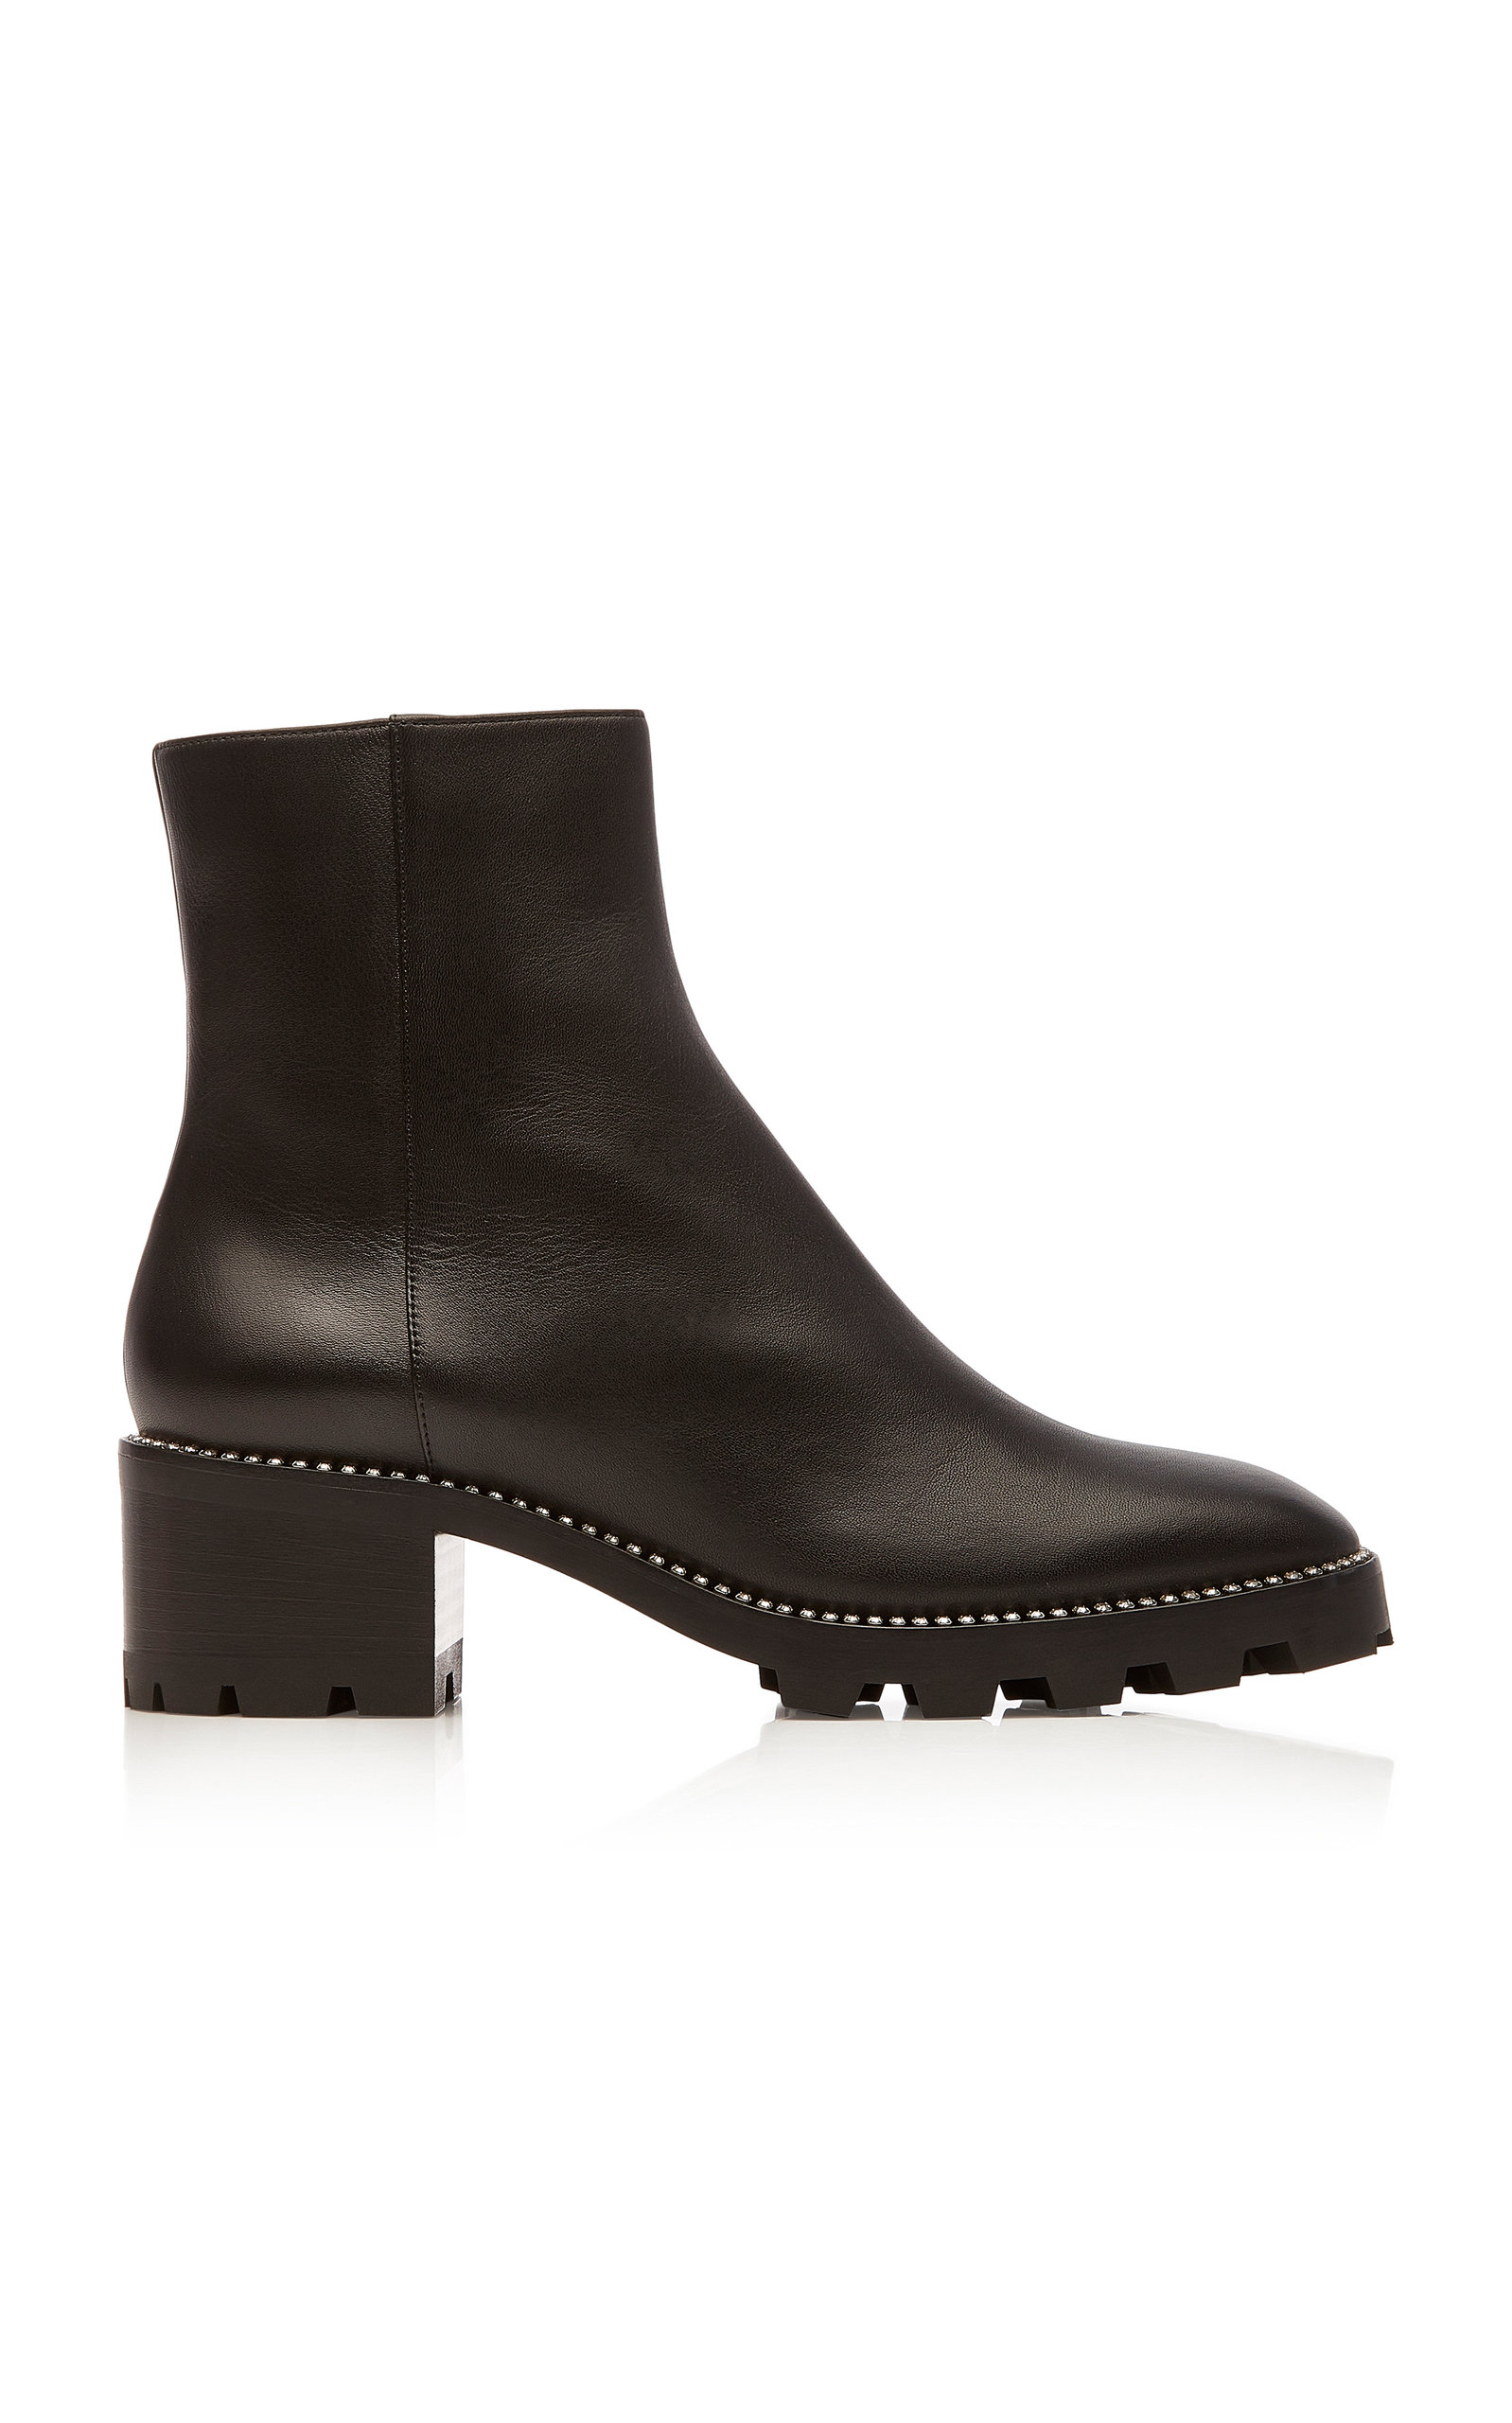 Jimmy Choo Boots Mava Embellished Leather Ankle Boots